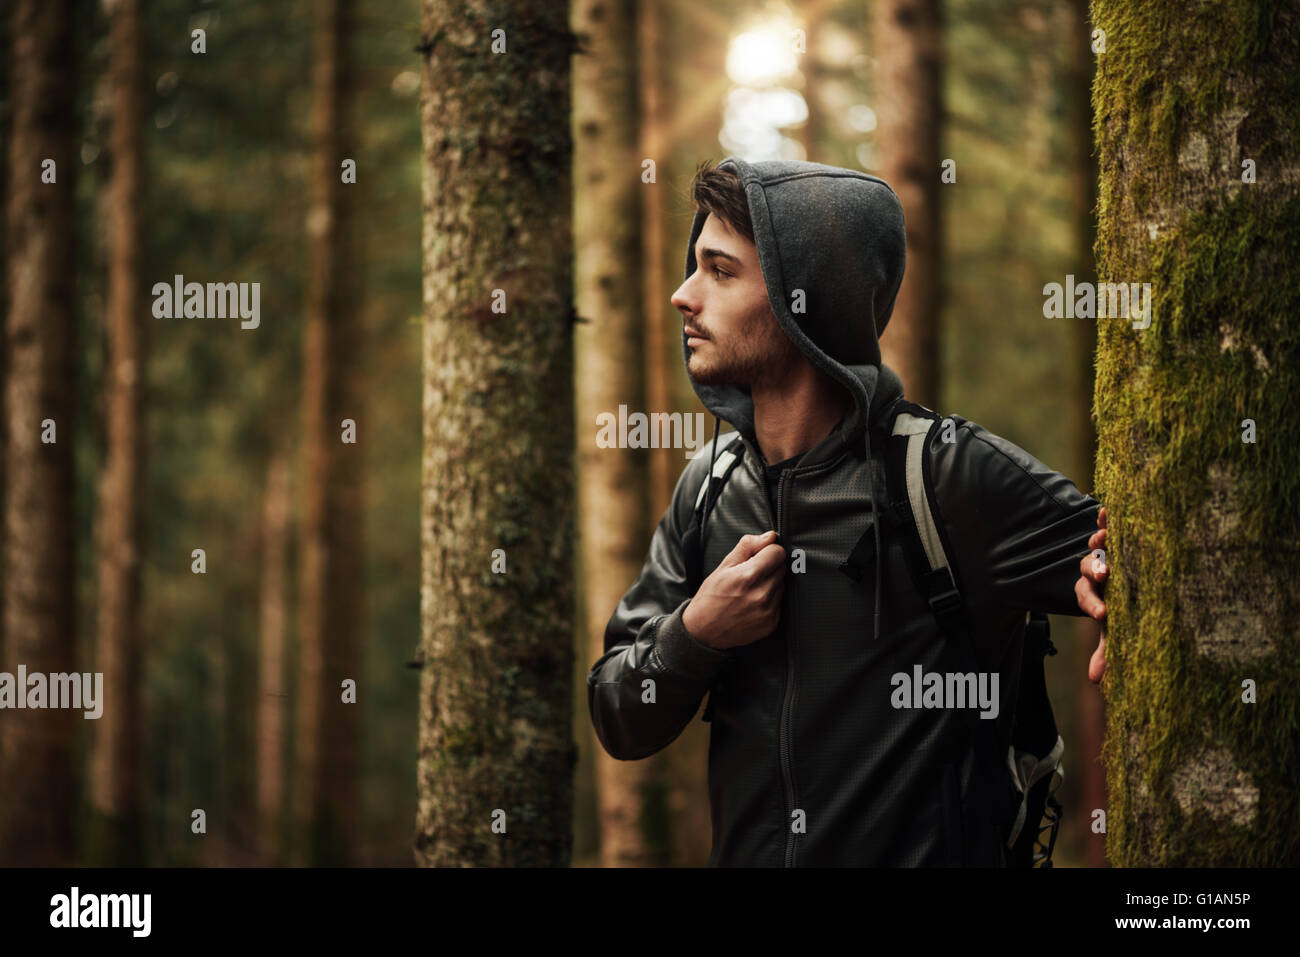 Young handsome man walking in a forest and looking around, nature and exploration concept - Stock Image